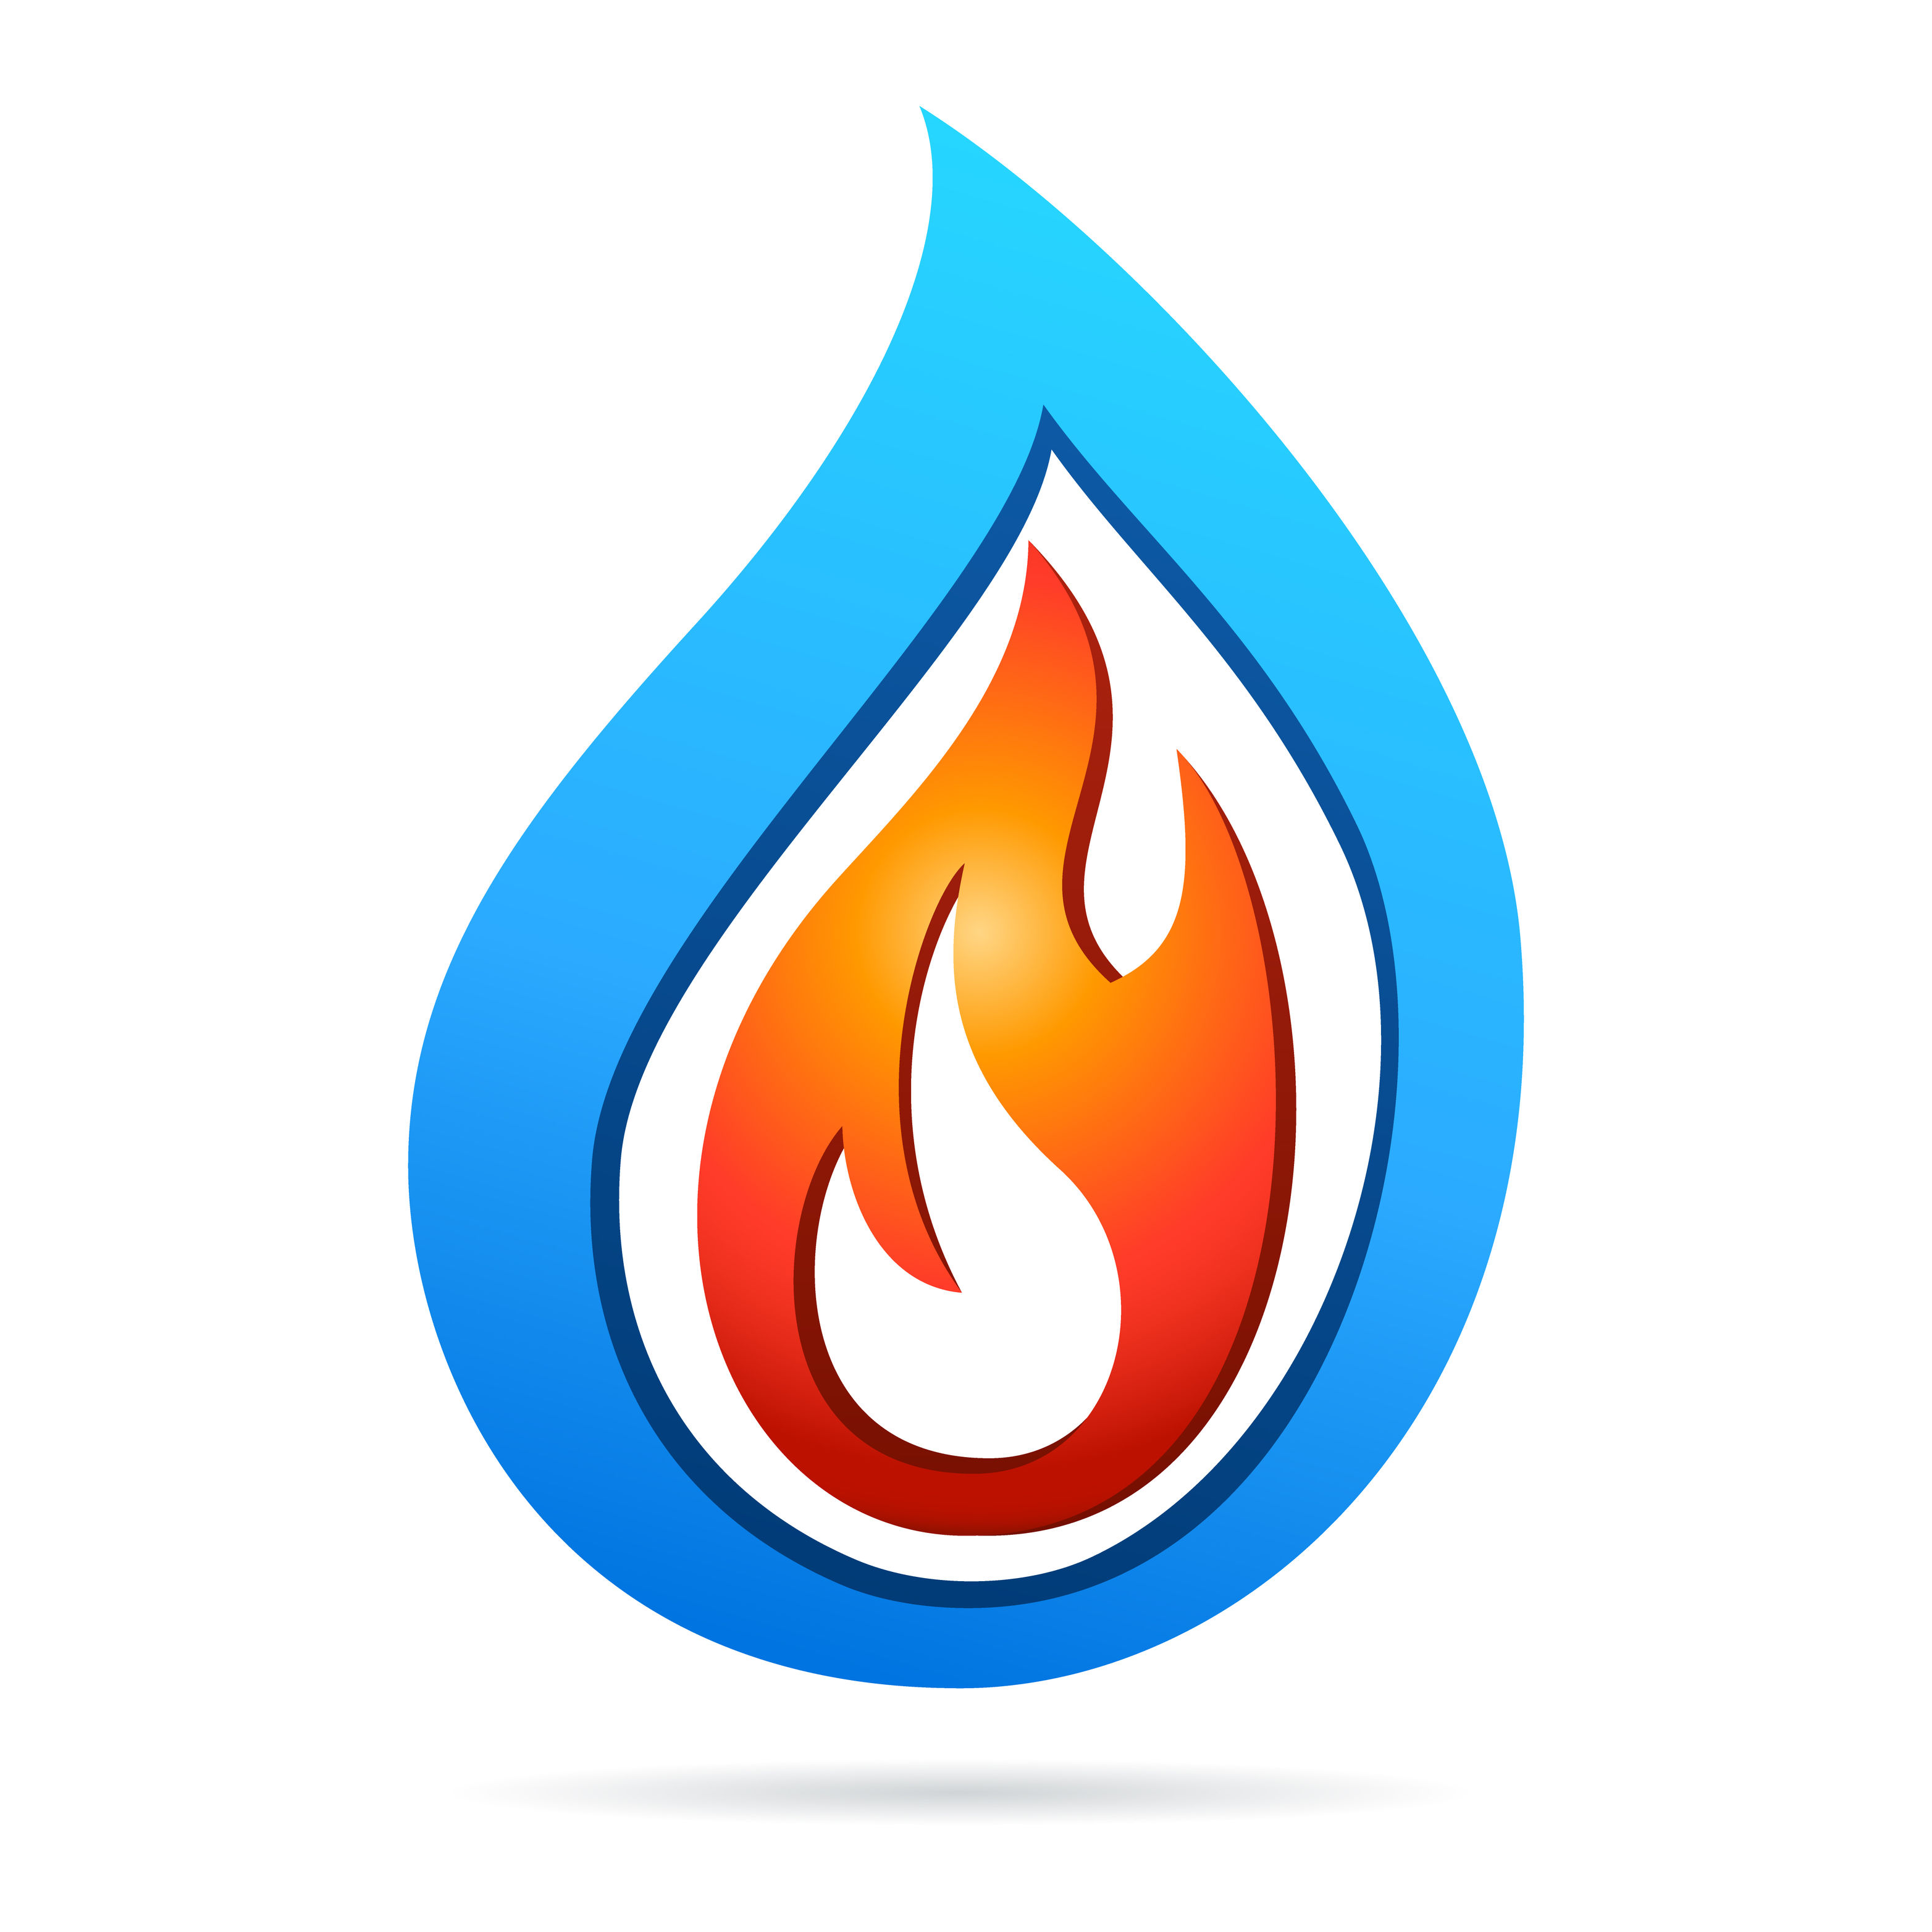 26041443 - fire and water - icon design